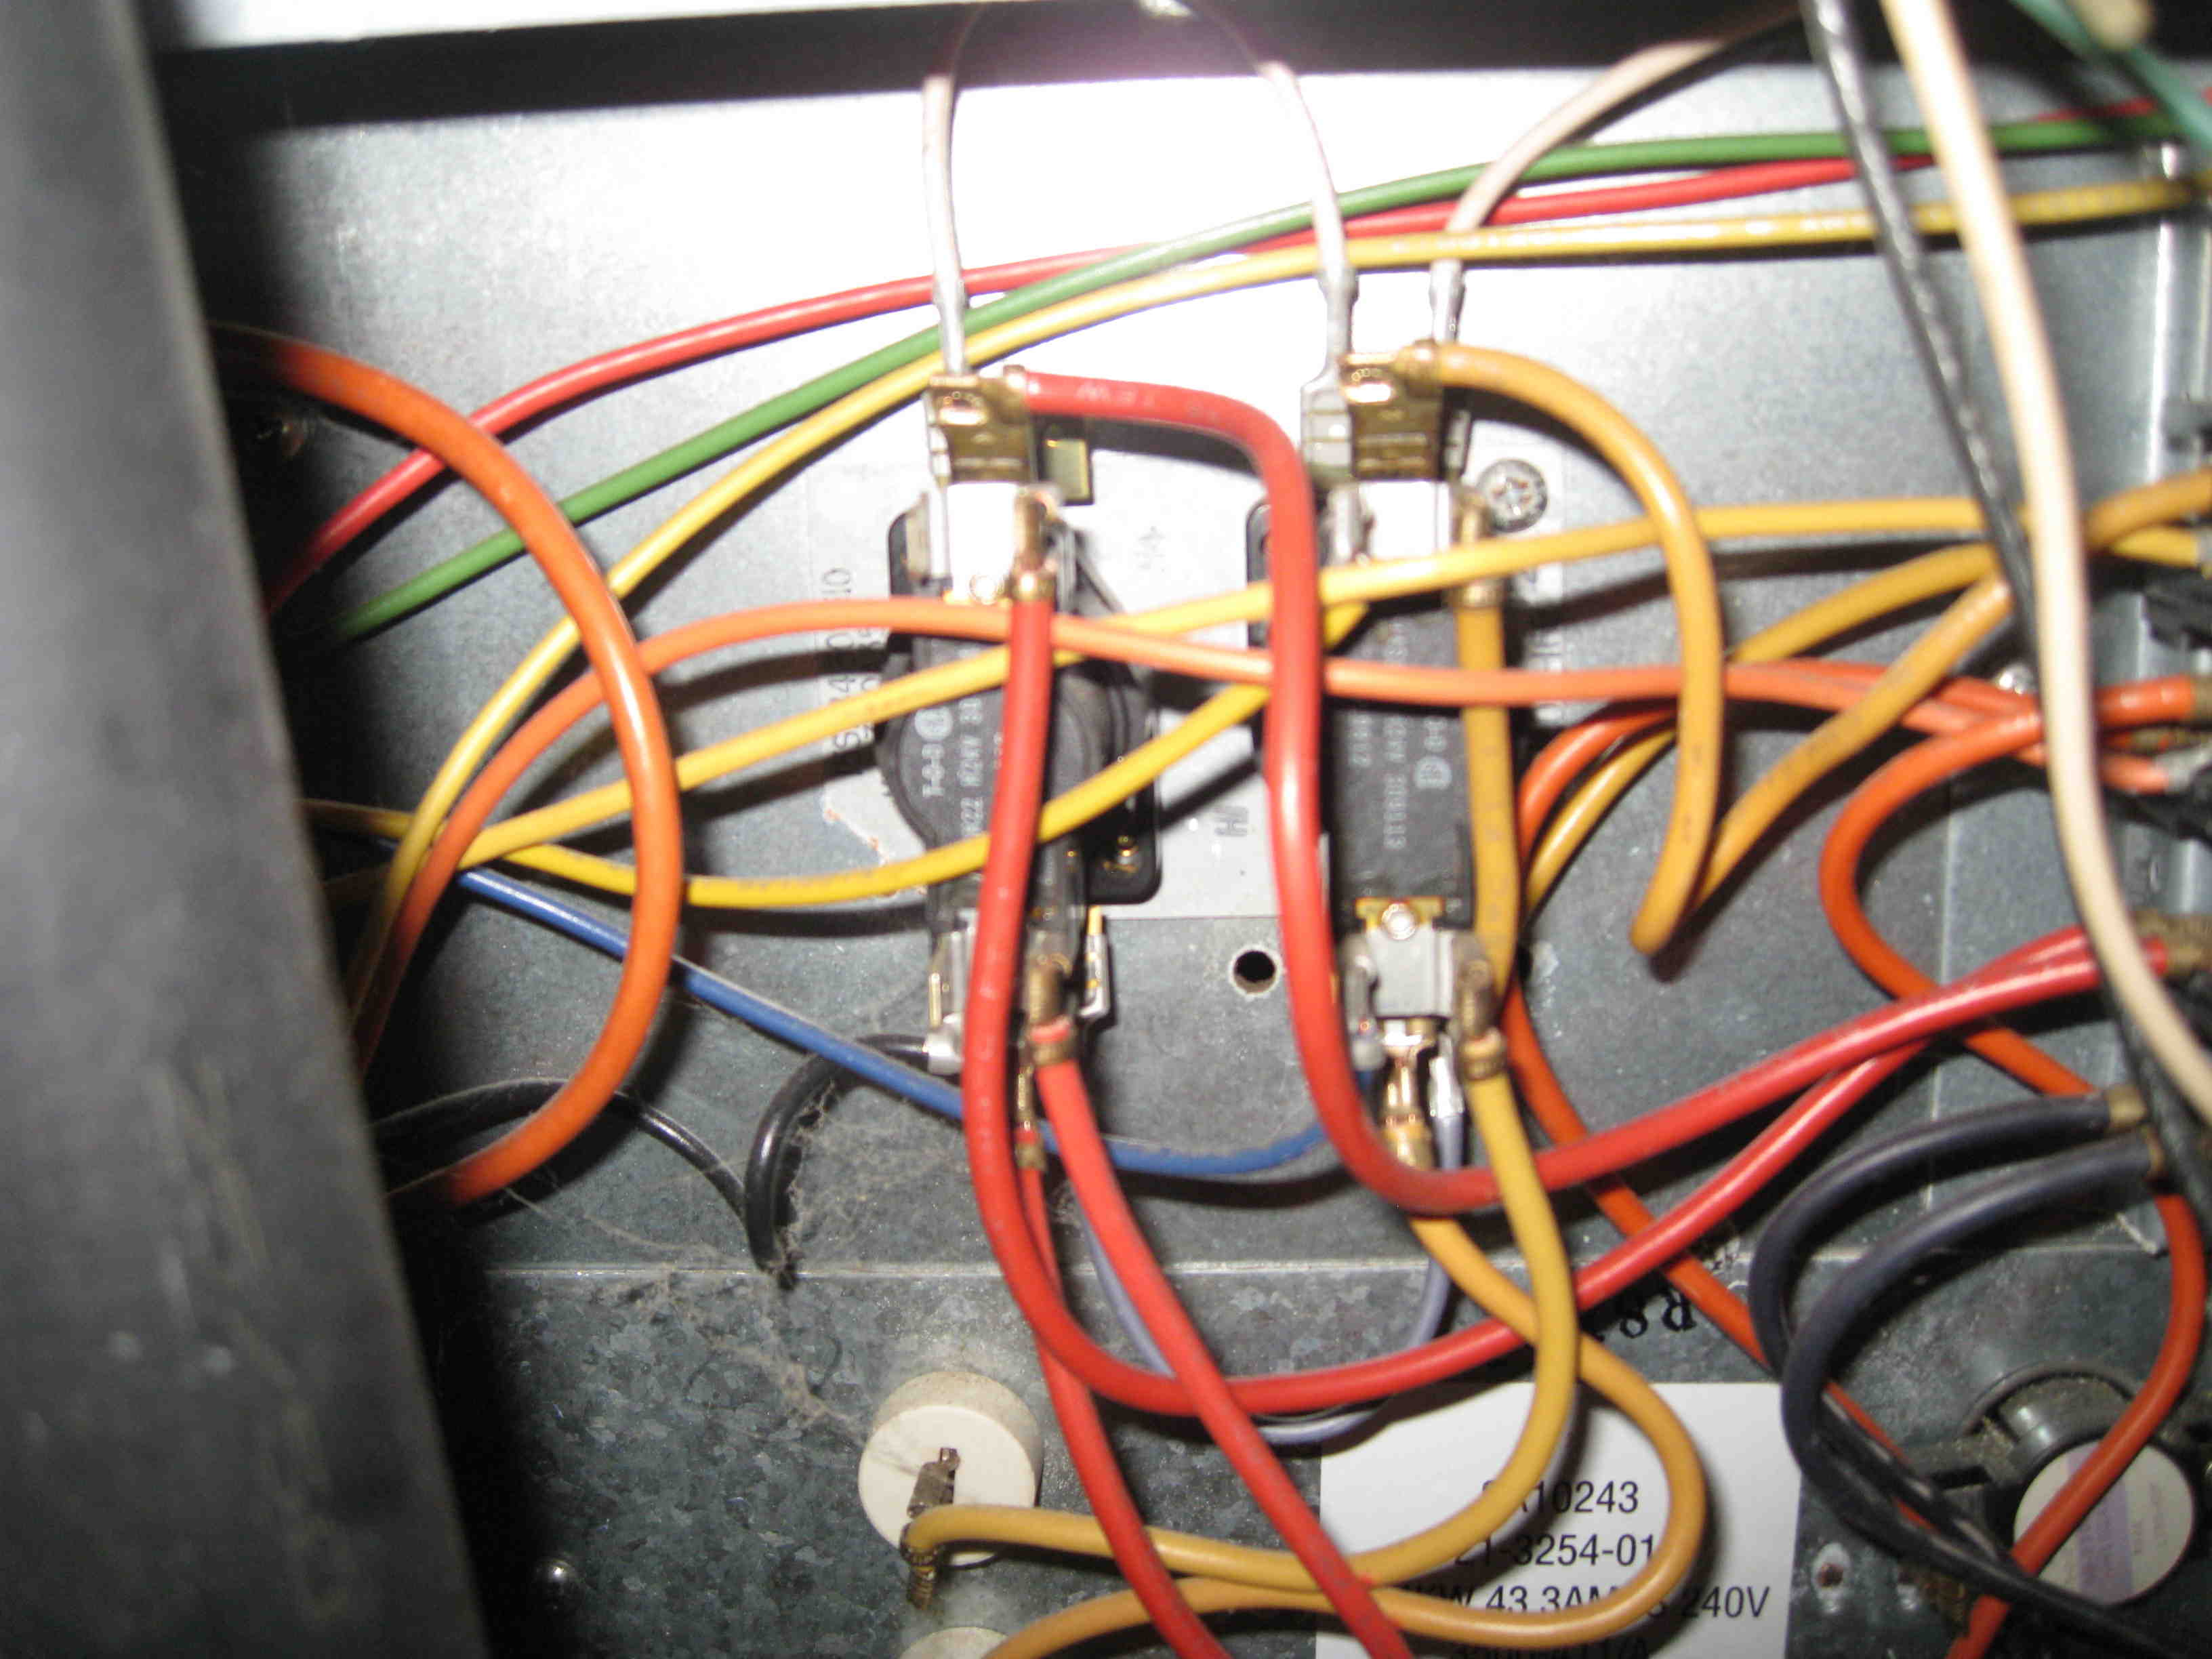 electric fan relay wiring diagram for 86 trans am i have a model eb23b furnace the blower runs all the time